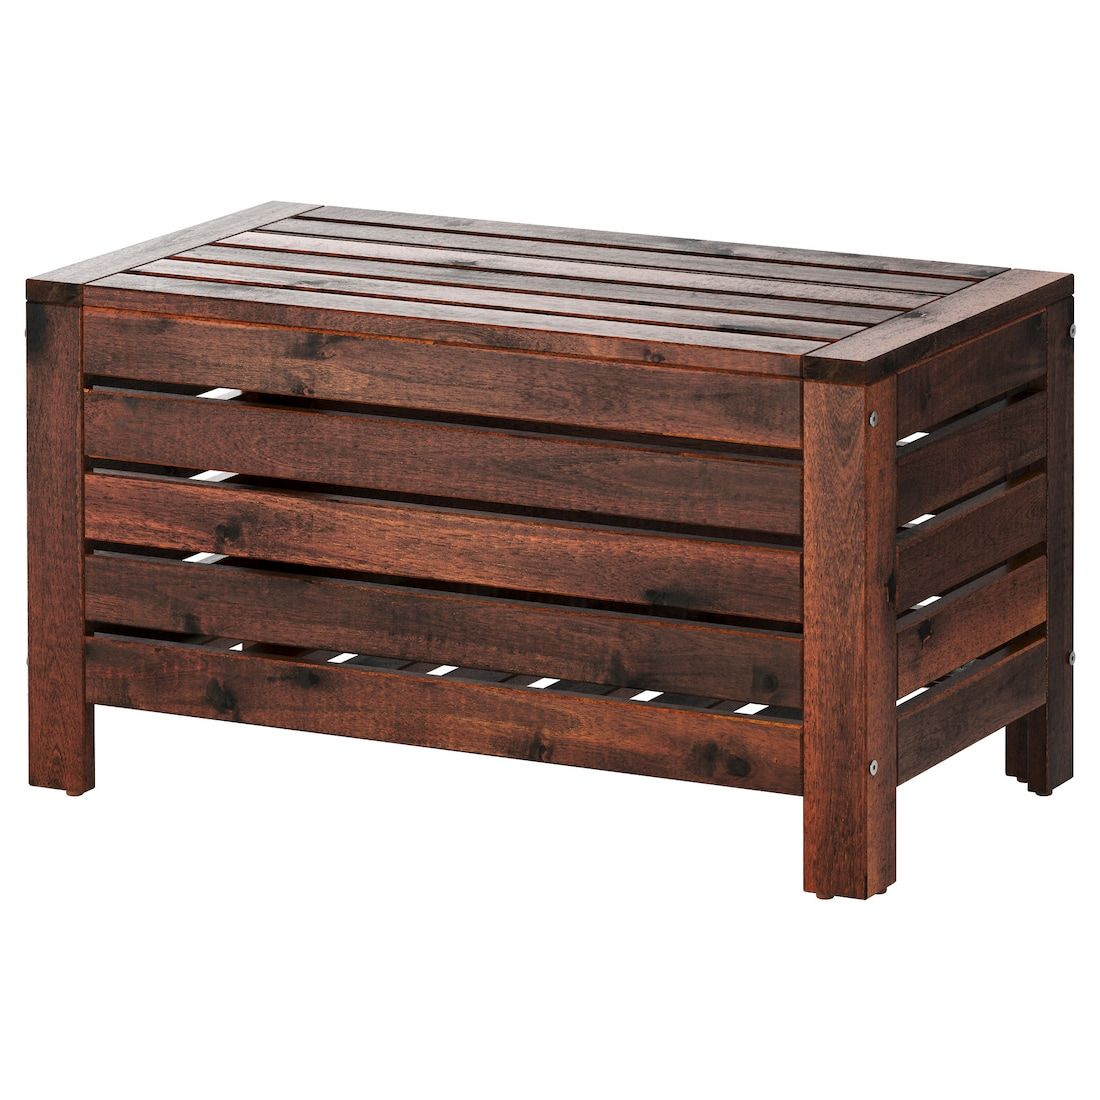 Auflagenbox Ikea Ikea ÄpplarÖ Storage Bench Outdoor Brown Stained In 2019 Mud